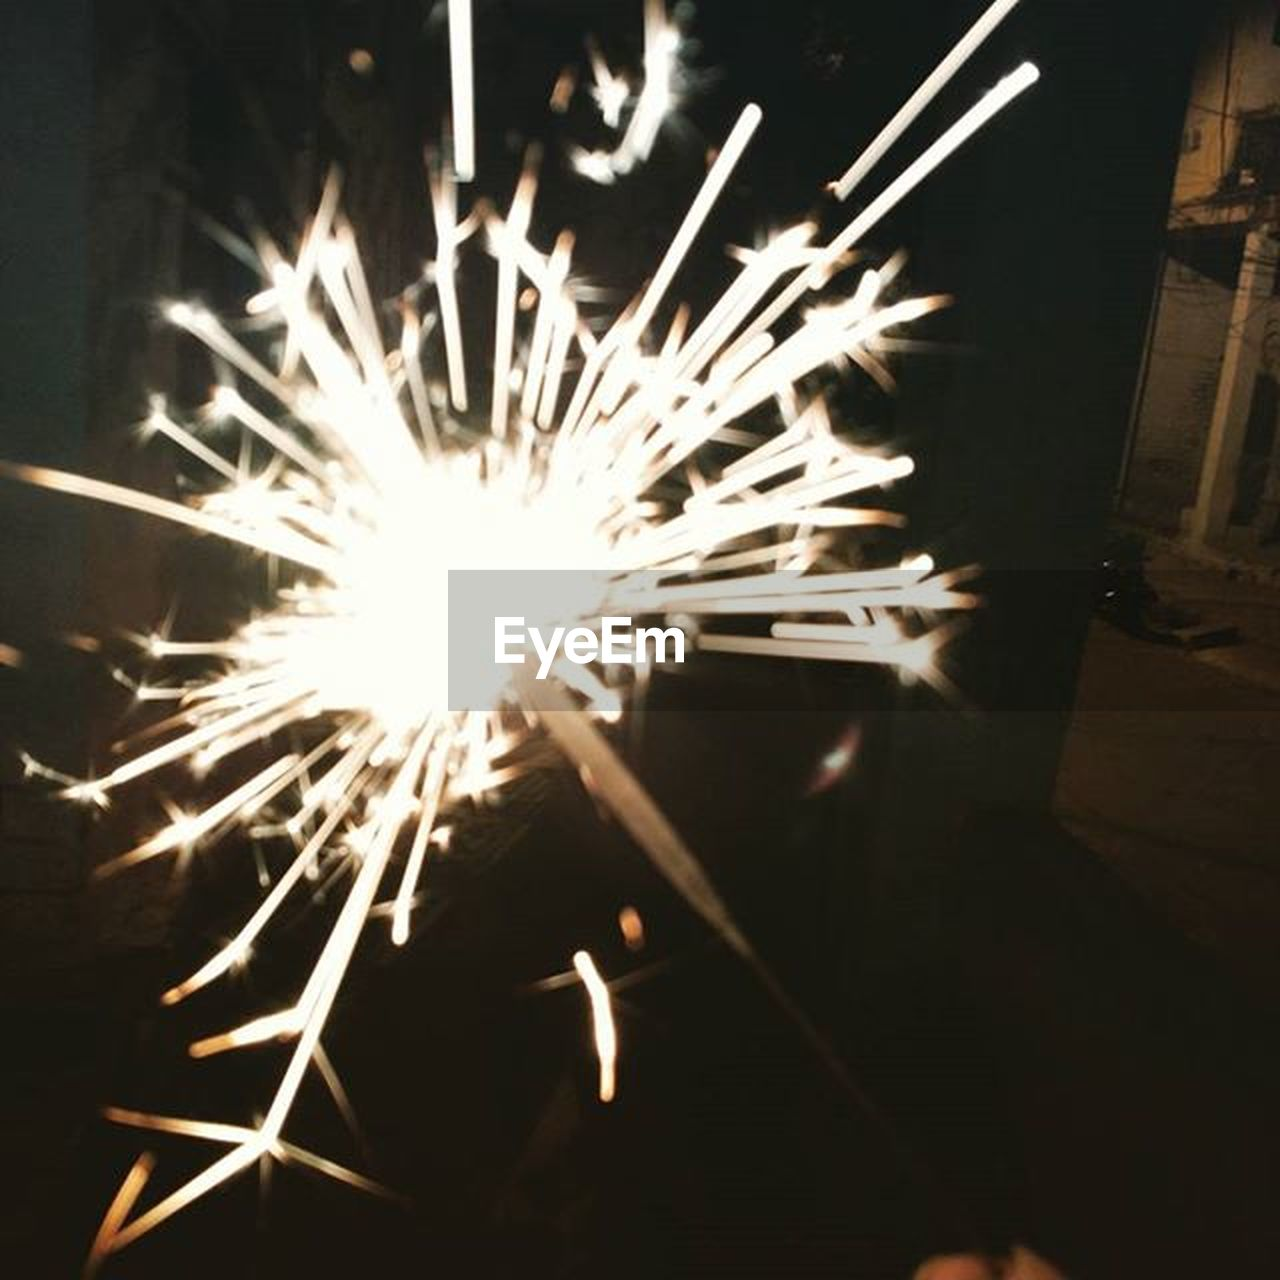 sparks, night, firework - man made object, firework display, illuminated, celebration, long exposure, arts culture and entertainment, glowing, exploding, motion, sparkler, blurred motion, event, no people, firework, outdoors, multi colored, diwali, close-up